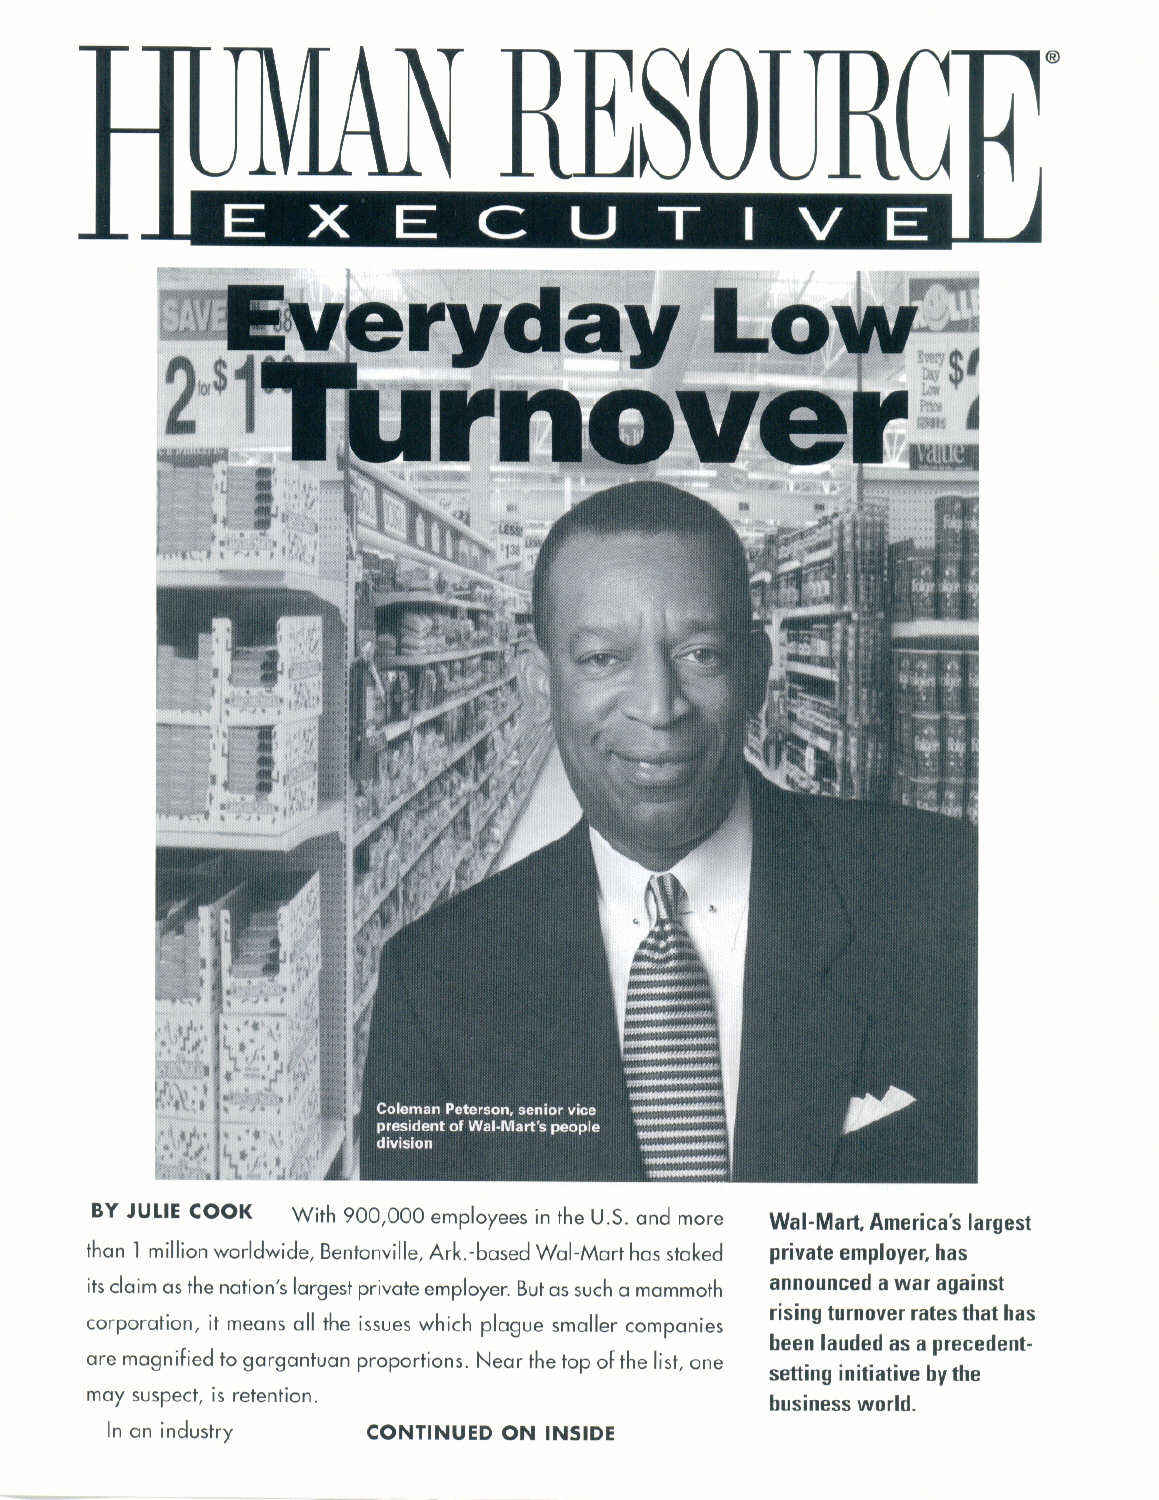 Everyday Low Turnover